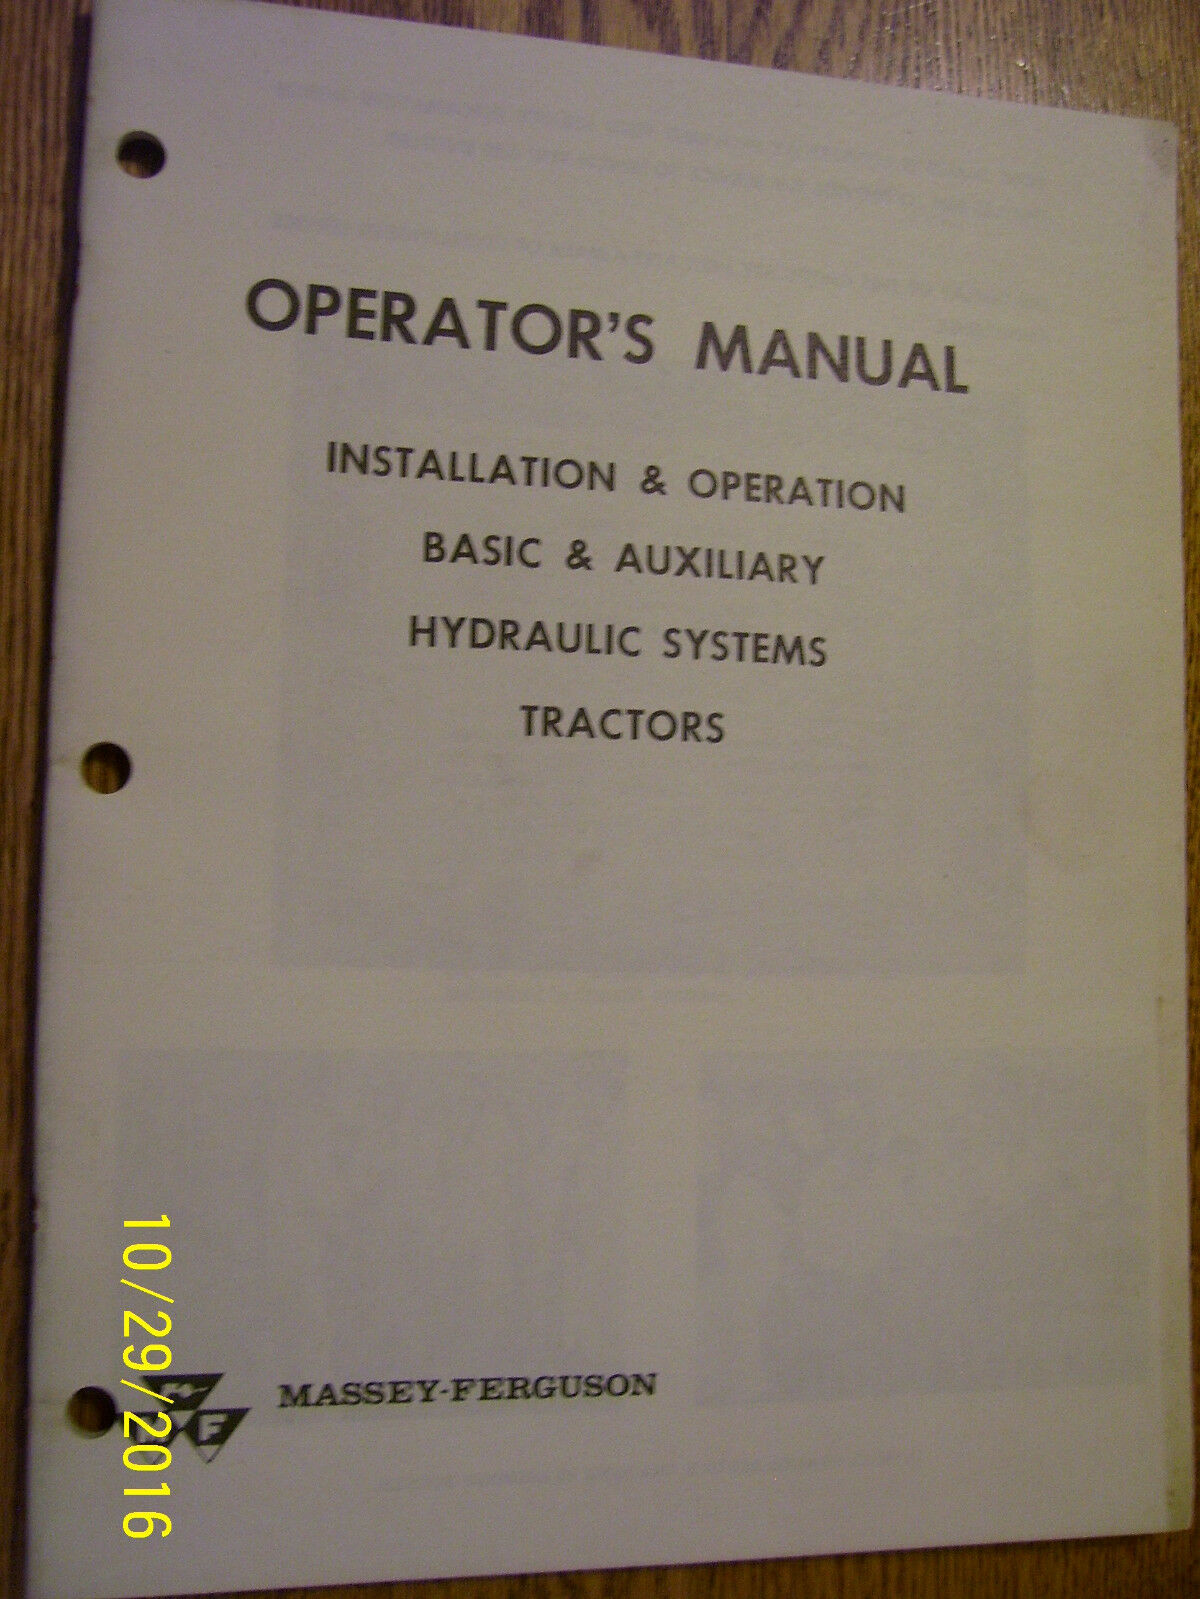 Vintage Massey Ferguson Operators Manual-Tractor Hydraulic Systems - 1965 1  of 2Only 1 available ...